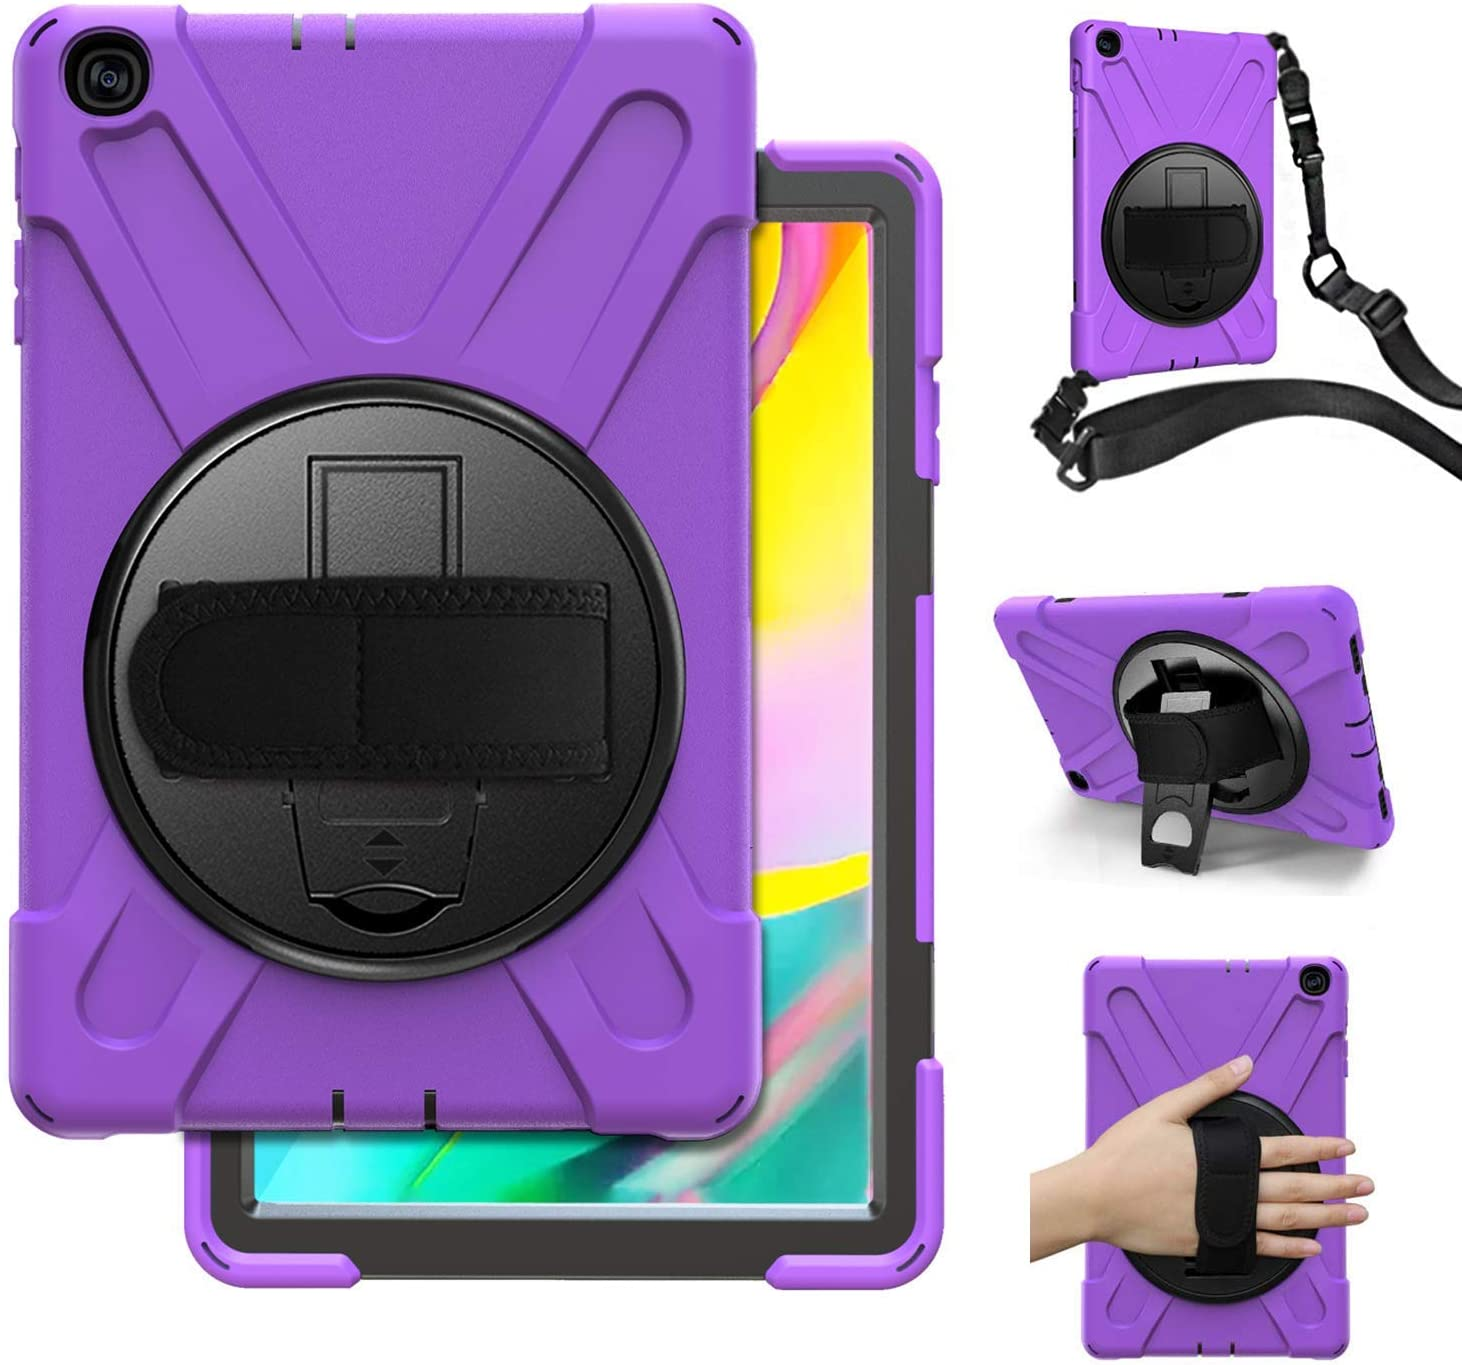 Samsung Galaxy Tab A 10.1 Case 2019 With Stand,Herize Heavy Duty Rugged Shockproof Protective Case With Handle Strap,Shoulder Strap For Galaxy Tab A 10.1 2019,T510/T515 Tablet For Kids,Students,Purple